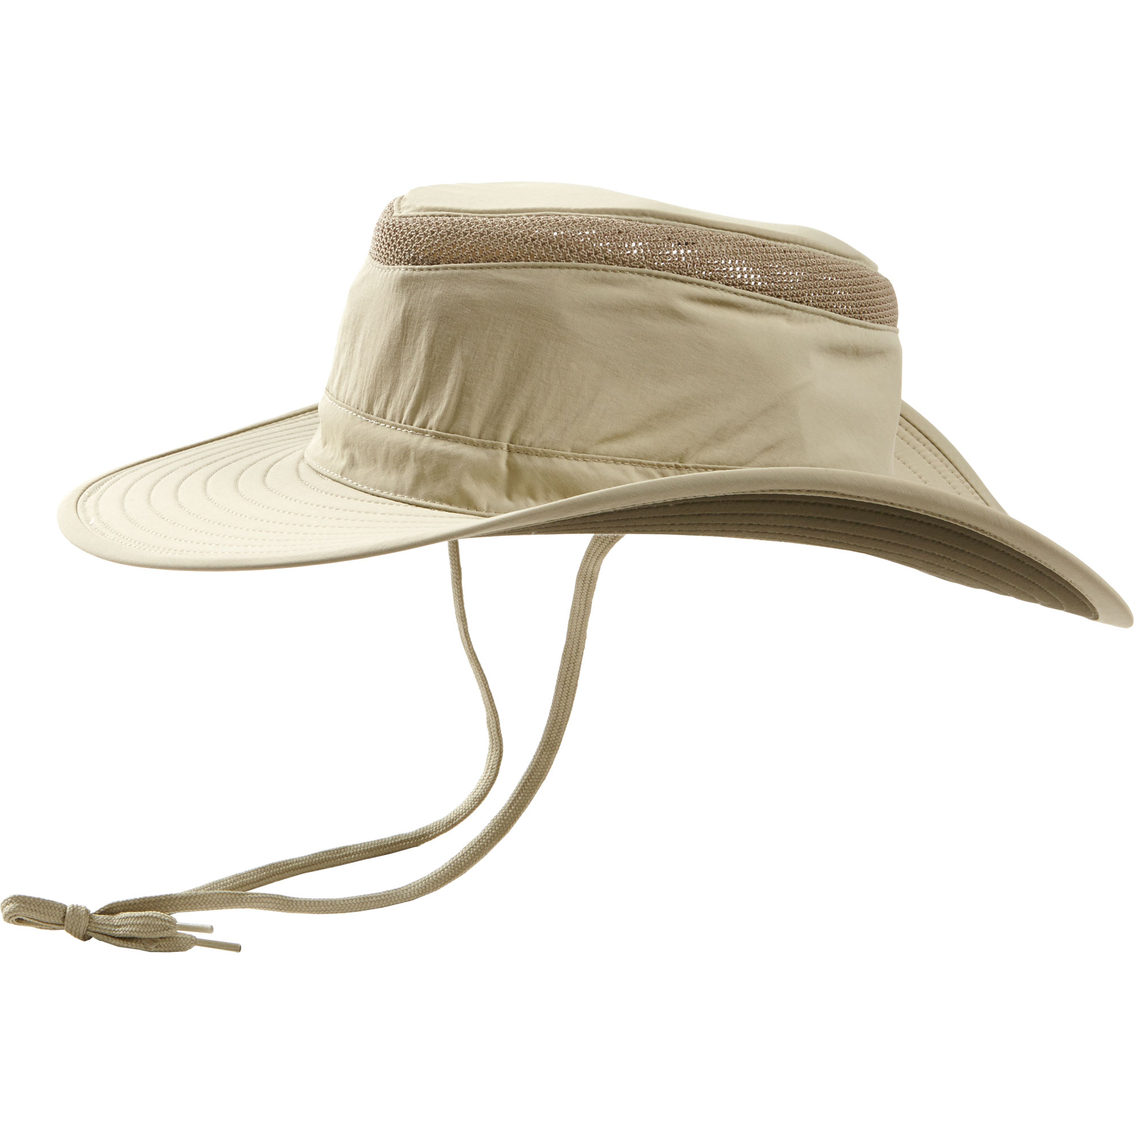 d0c7f8f25bd Henschel Hats Packable Safari Hat